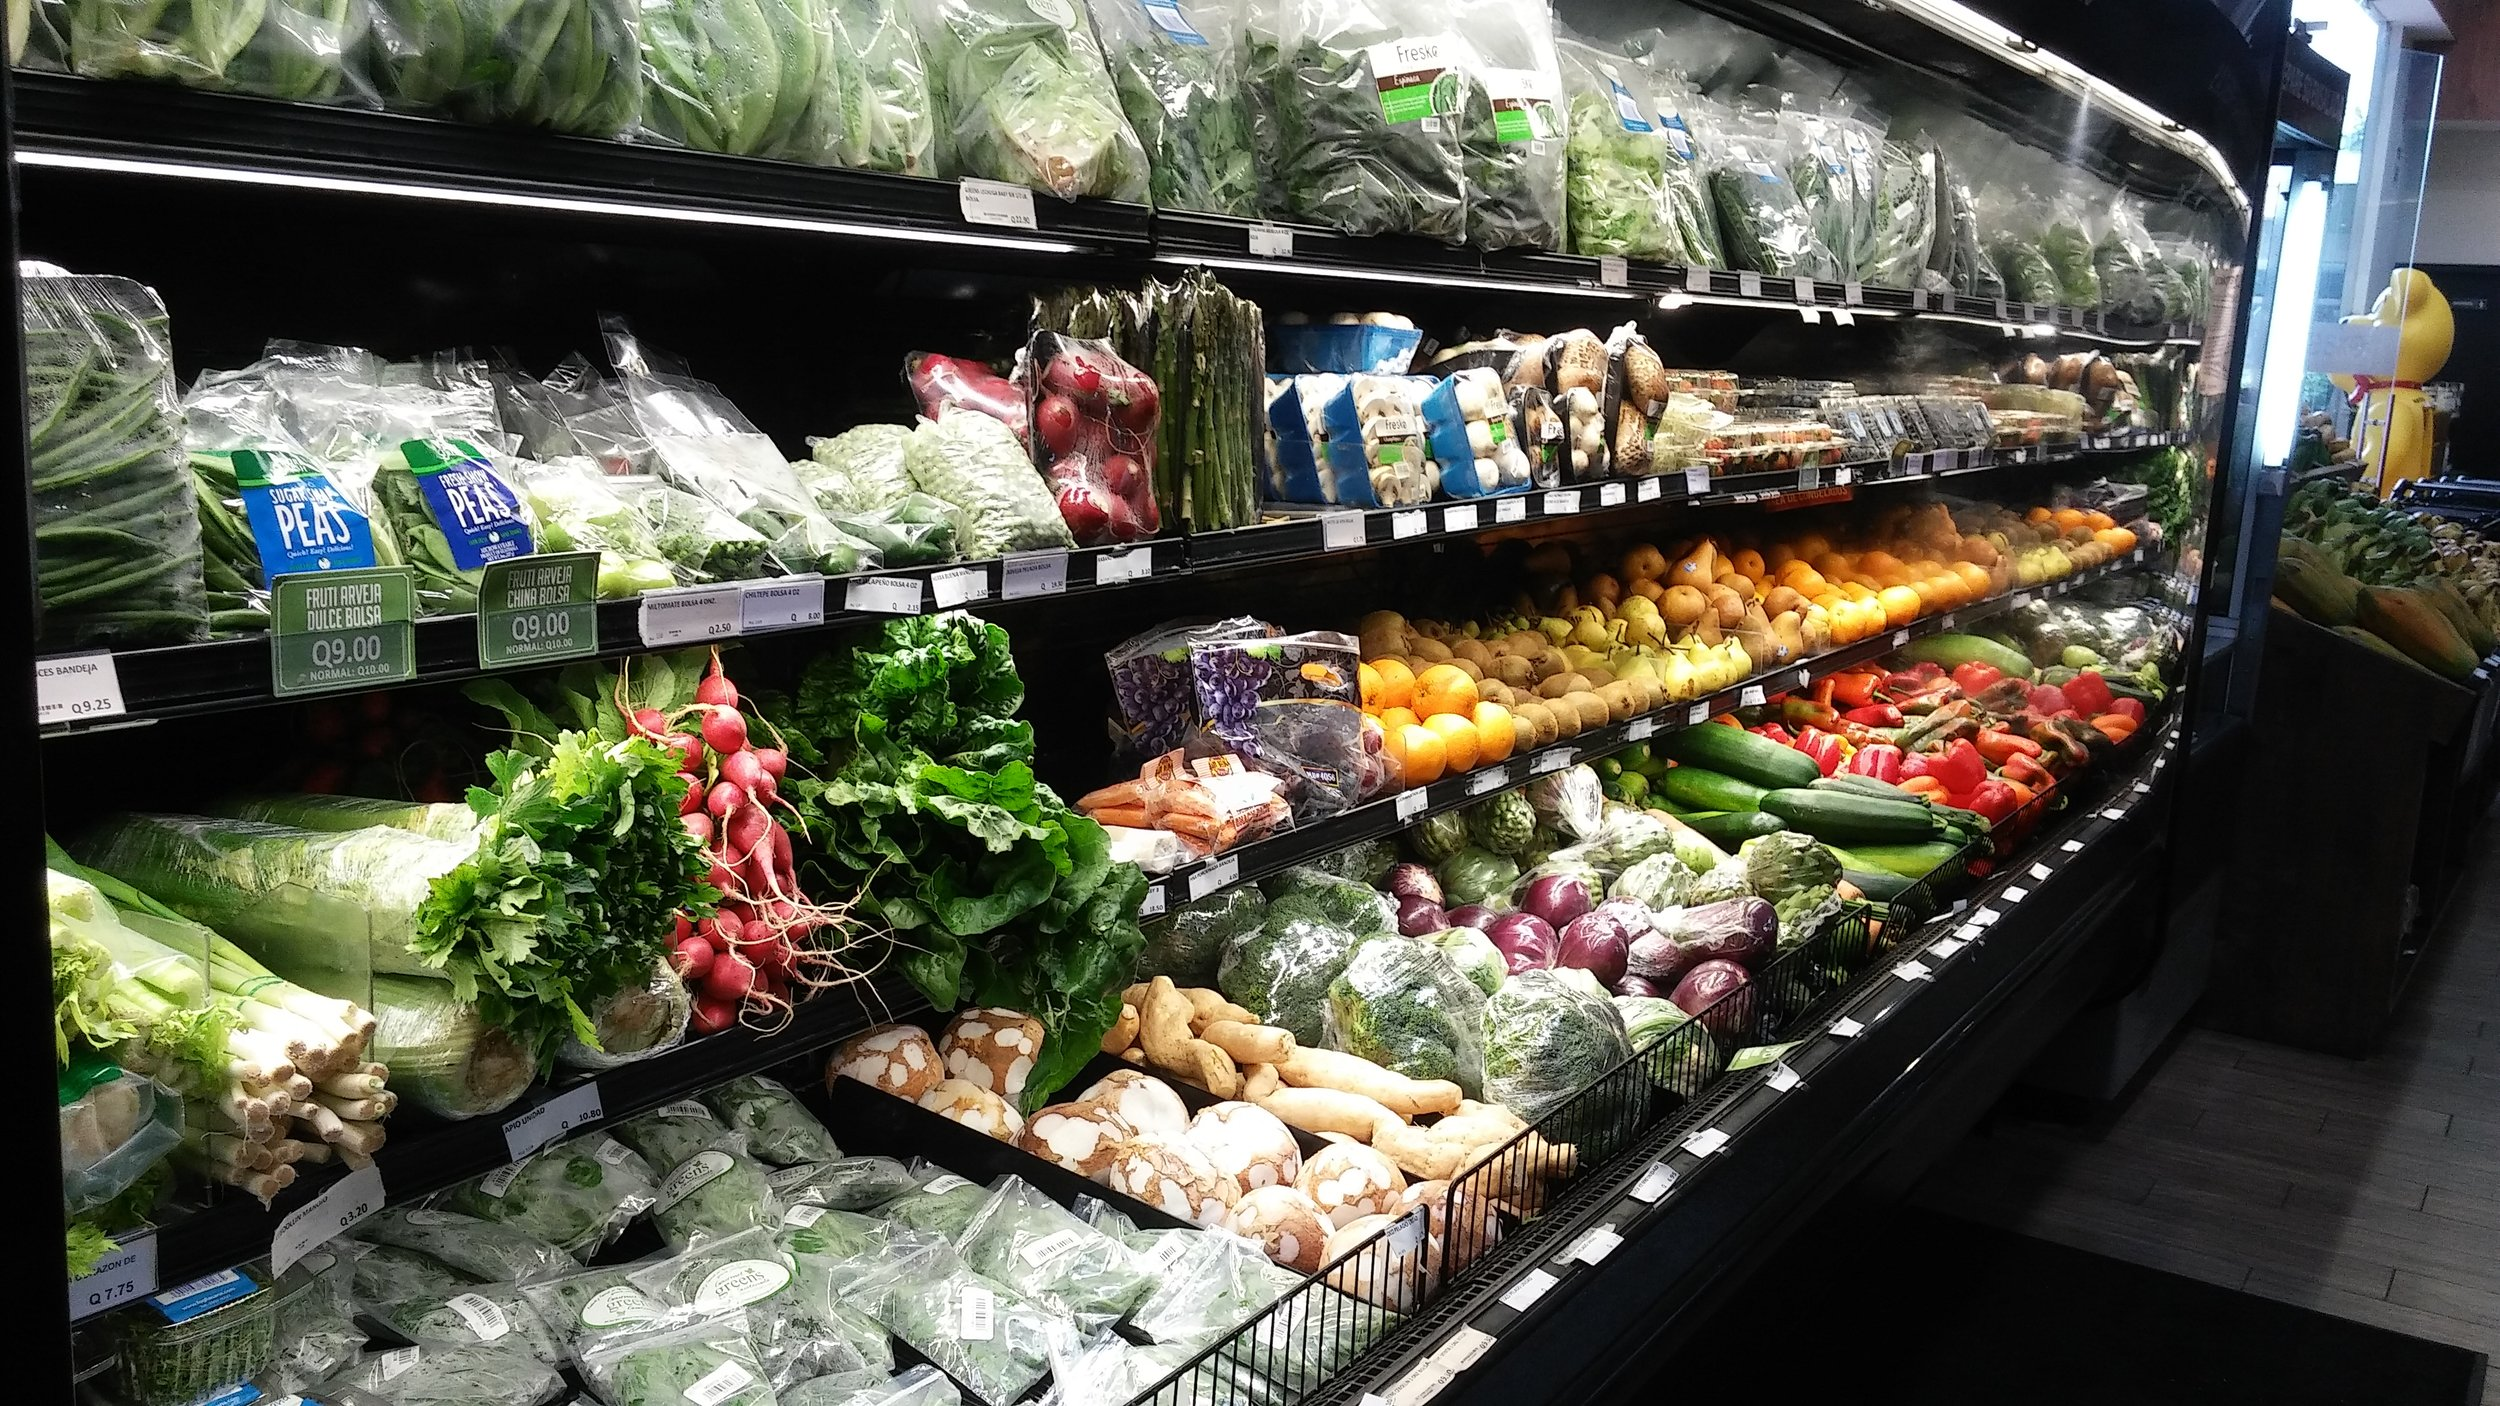 Types of packaging systems for fresh produce being displayed in Guatemalan supermarkets. Our project promotes the use of innovative Modified Atmosphere Packaging (MAP) that increases shelf-life while retaining product quality.